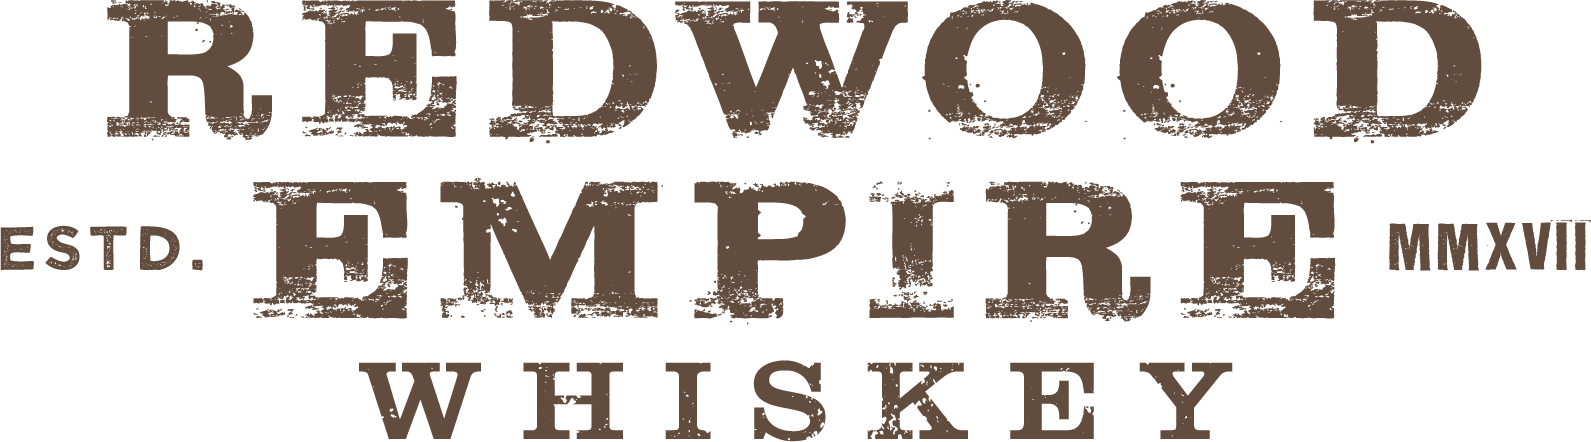 Redwood Empire Whiskey| Shop Now